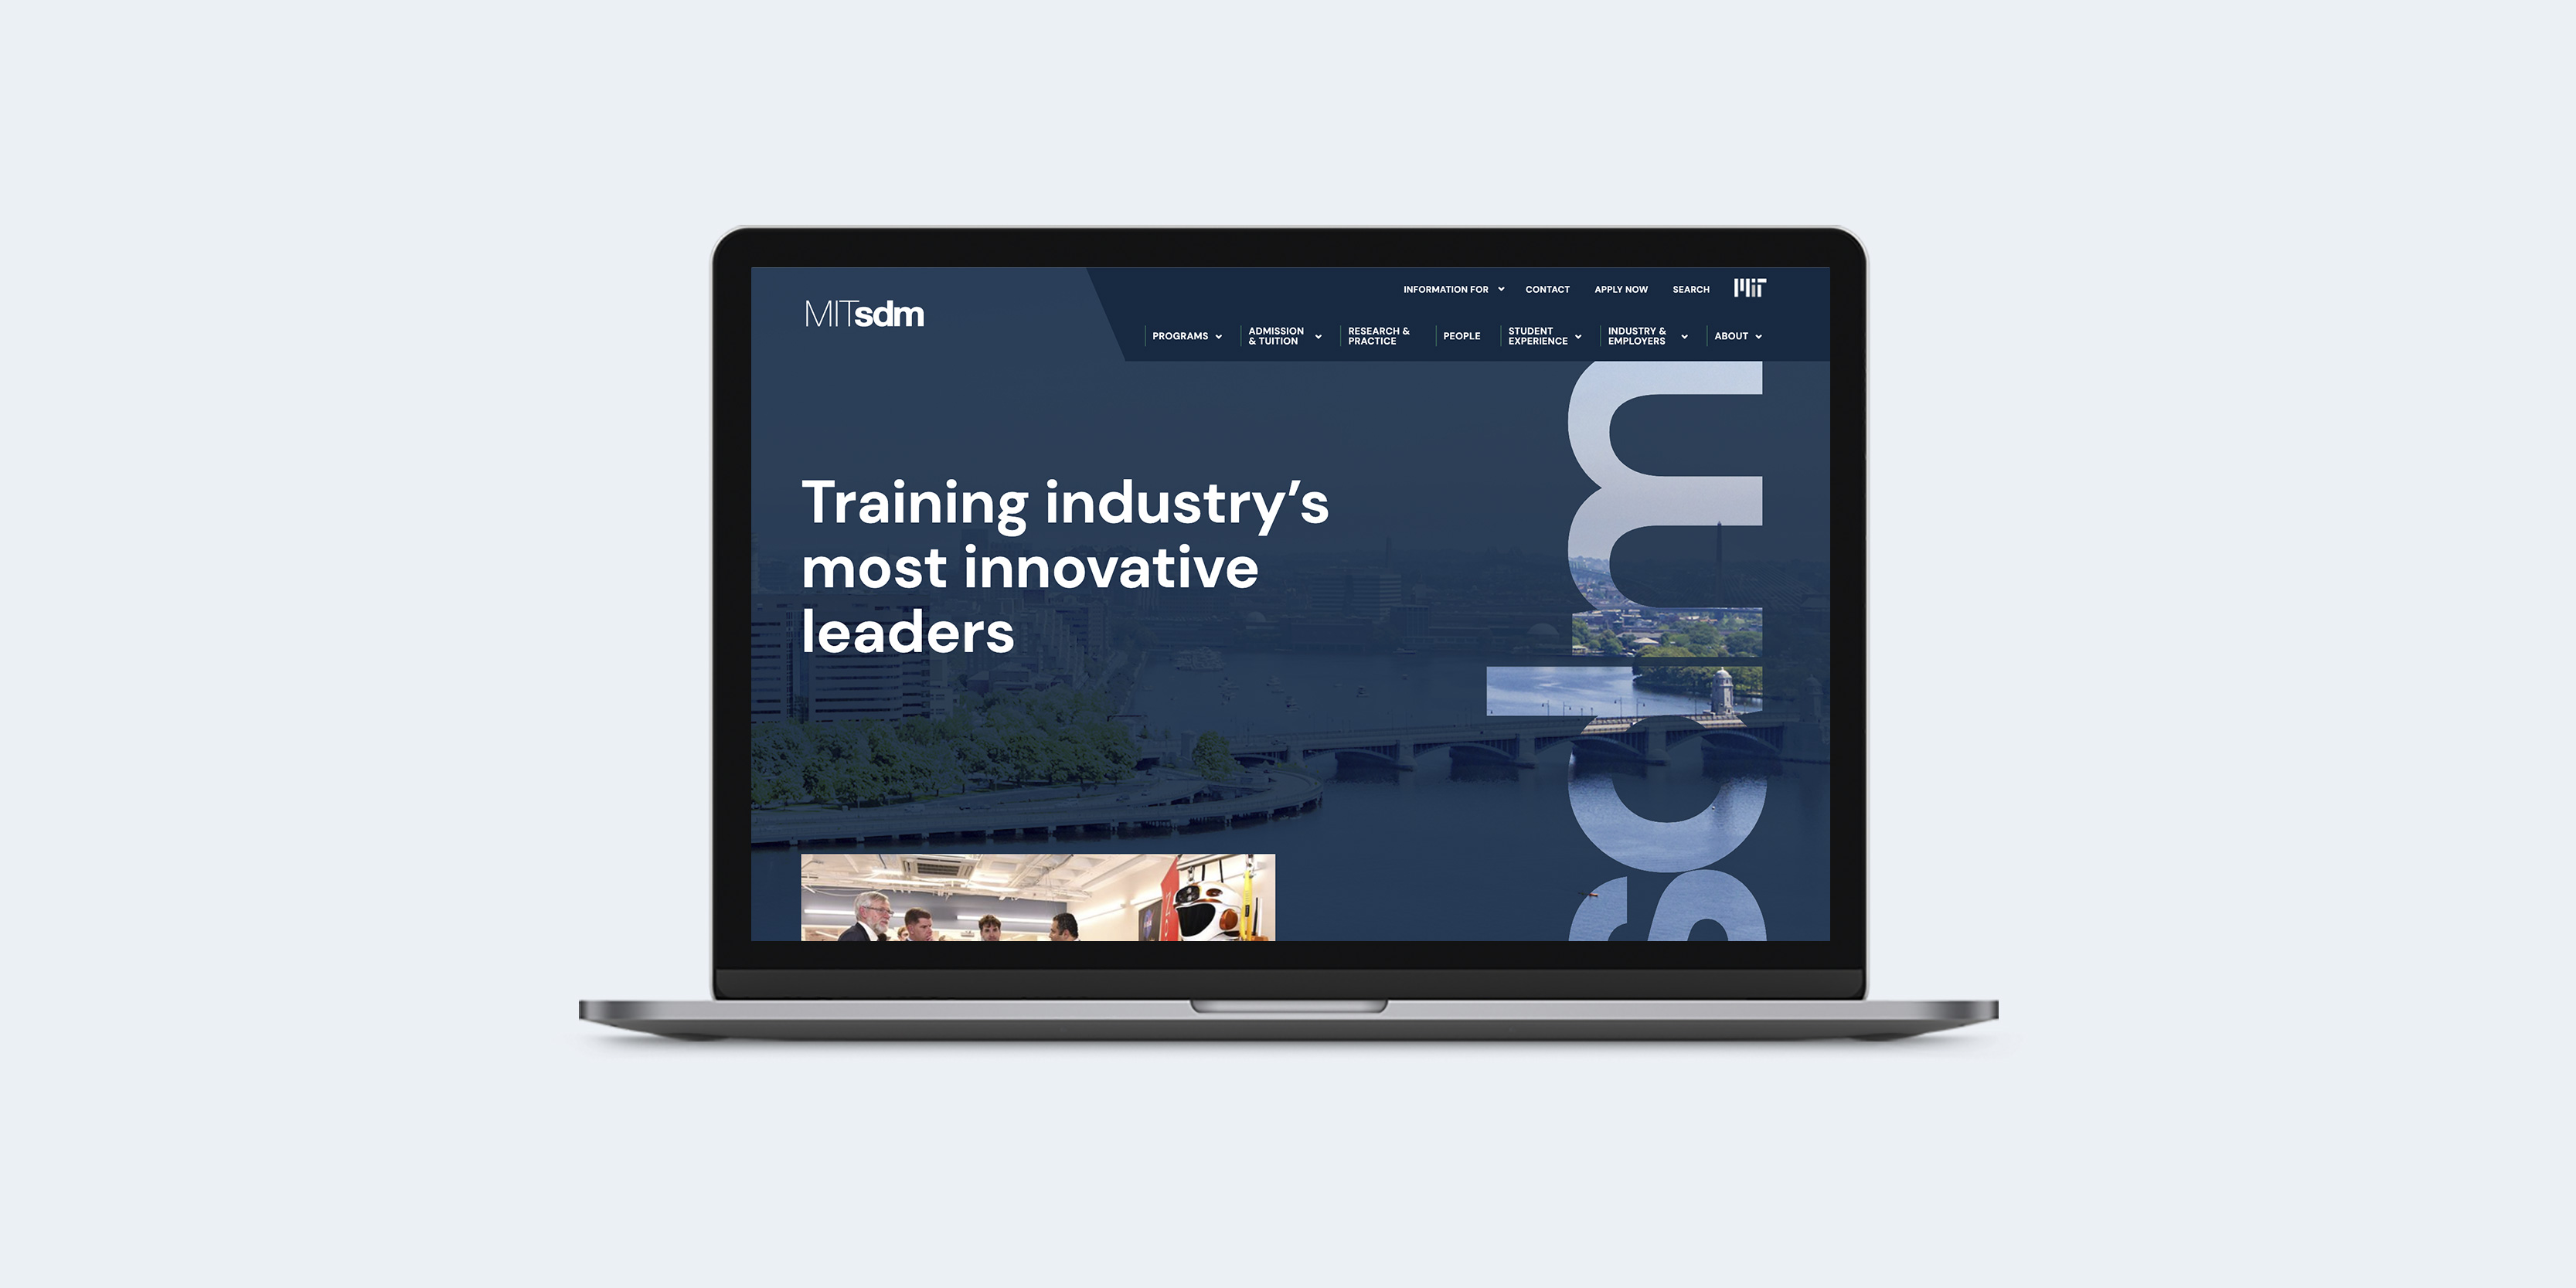 MIT SDM website design